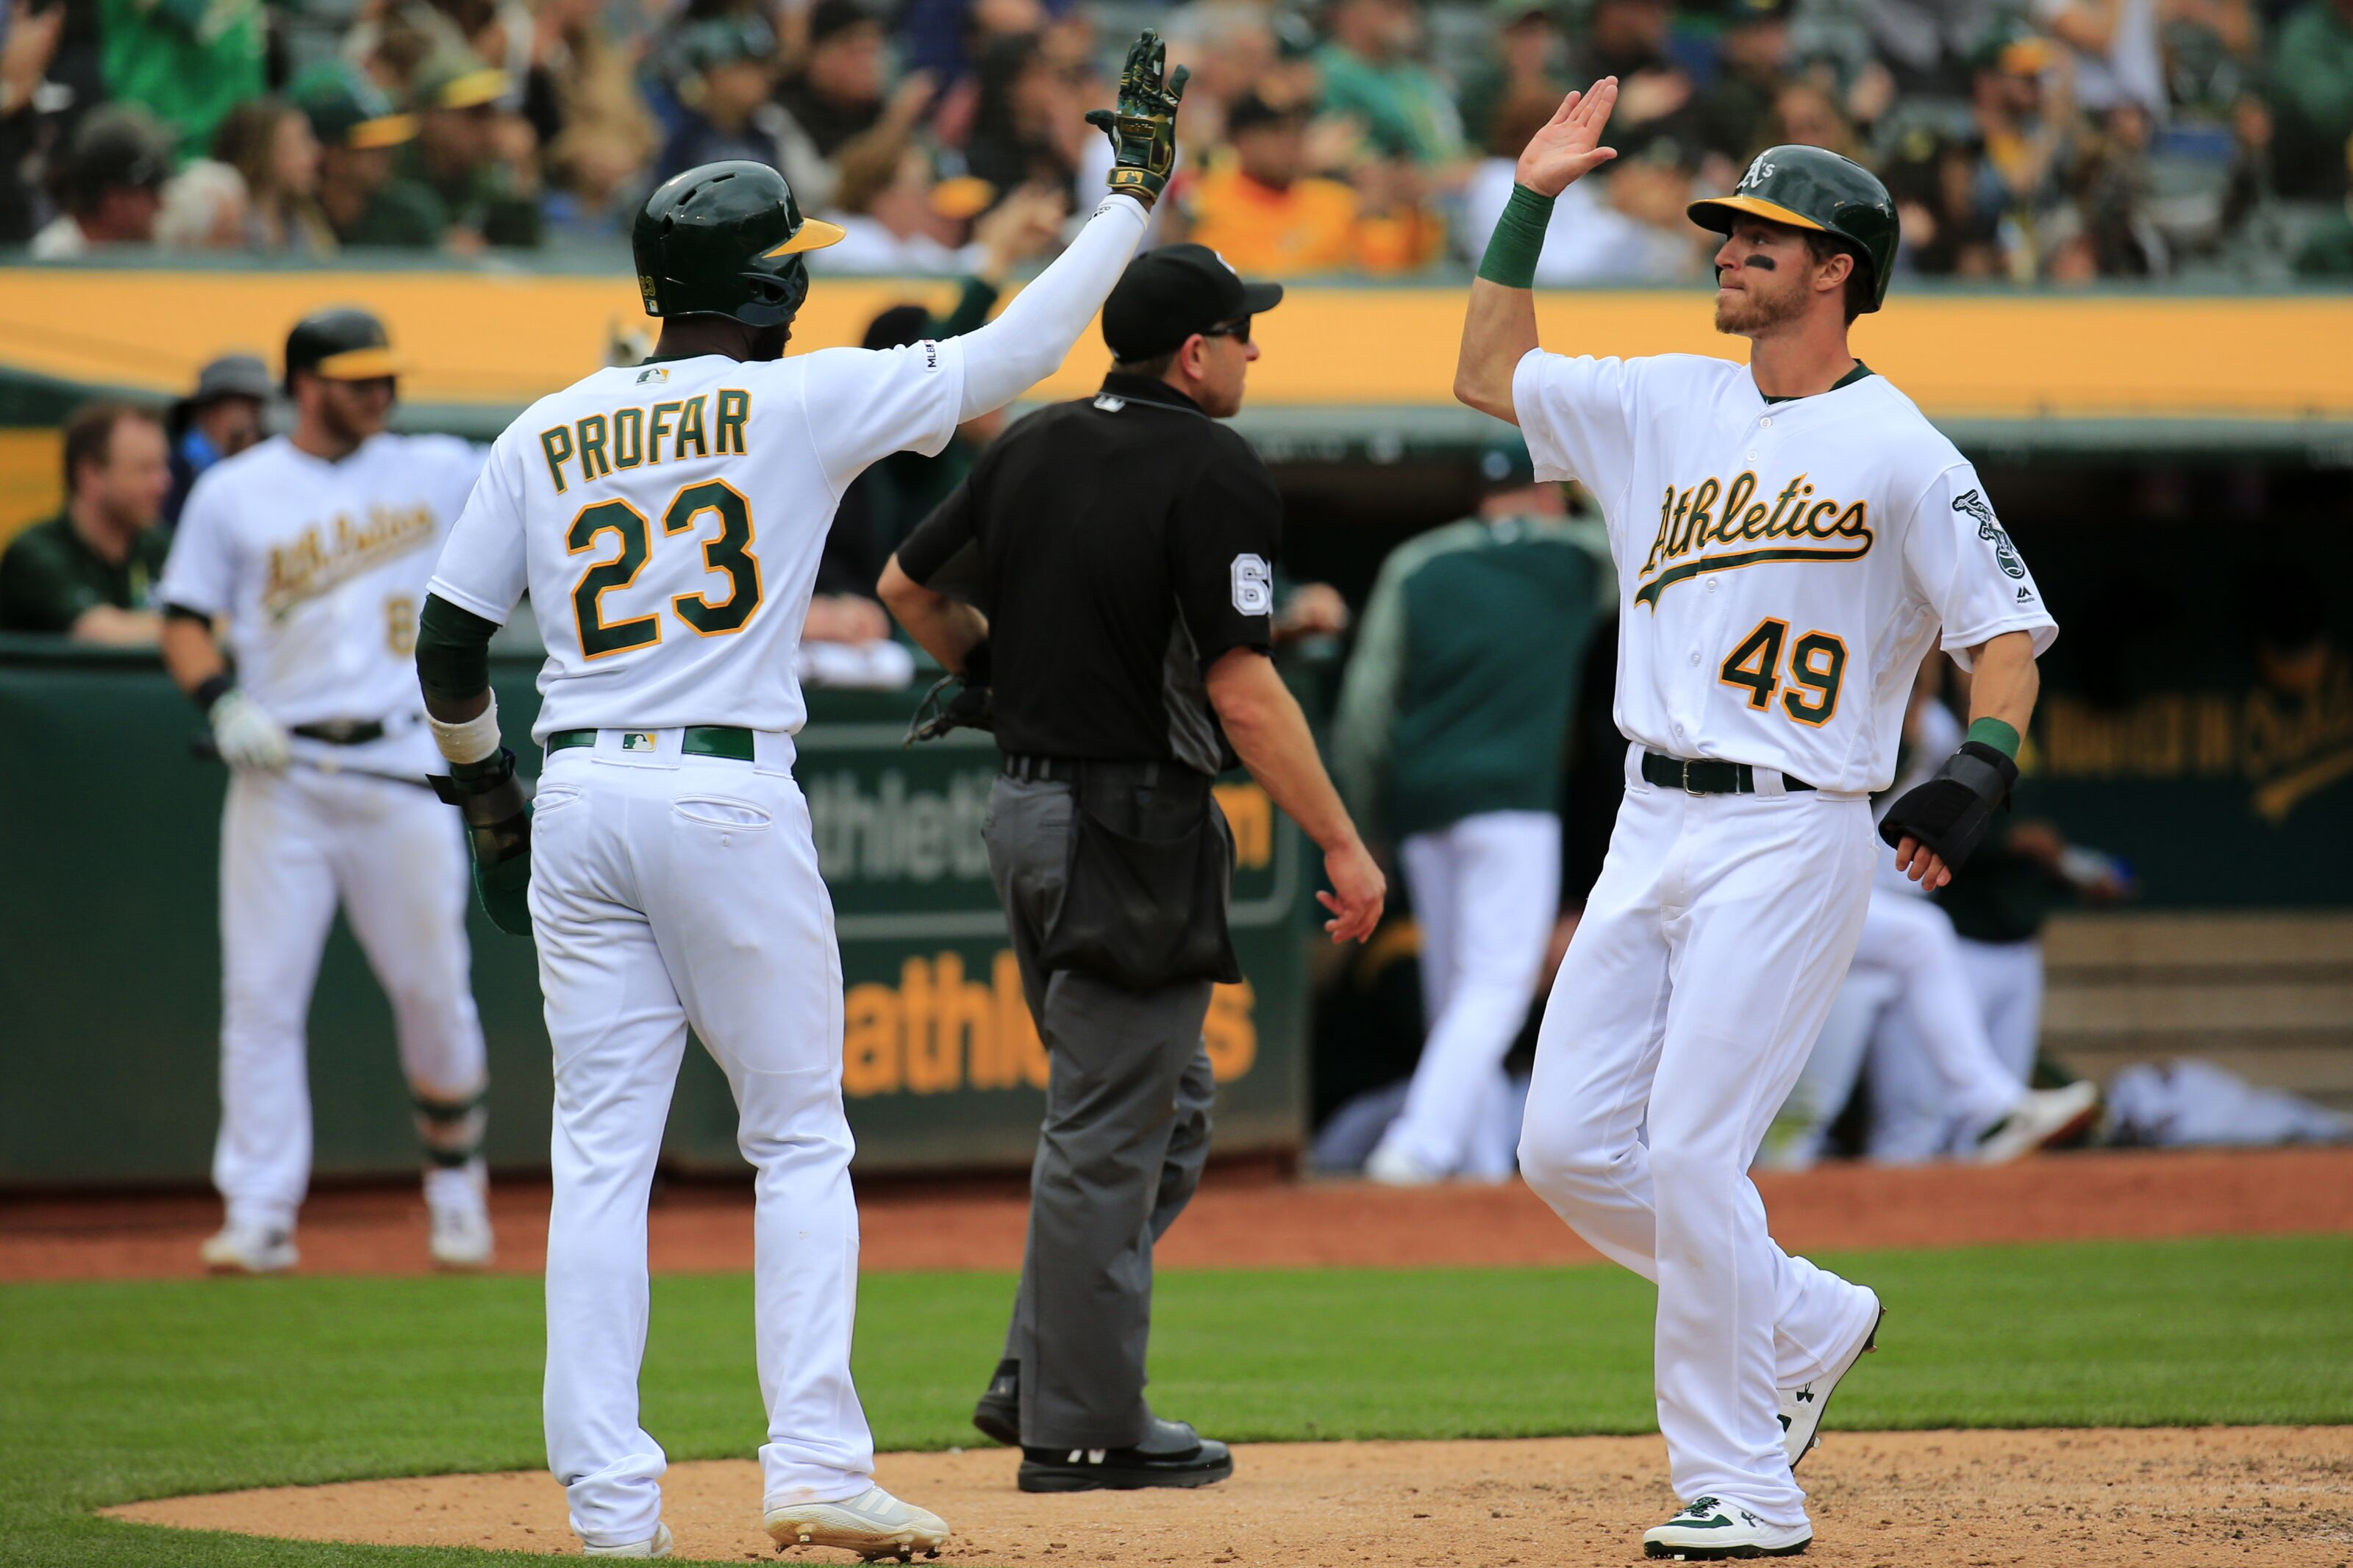 Mlb Wild Card Standings Oakland Surges Cleveland Falters